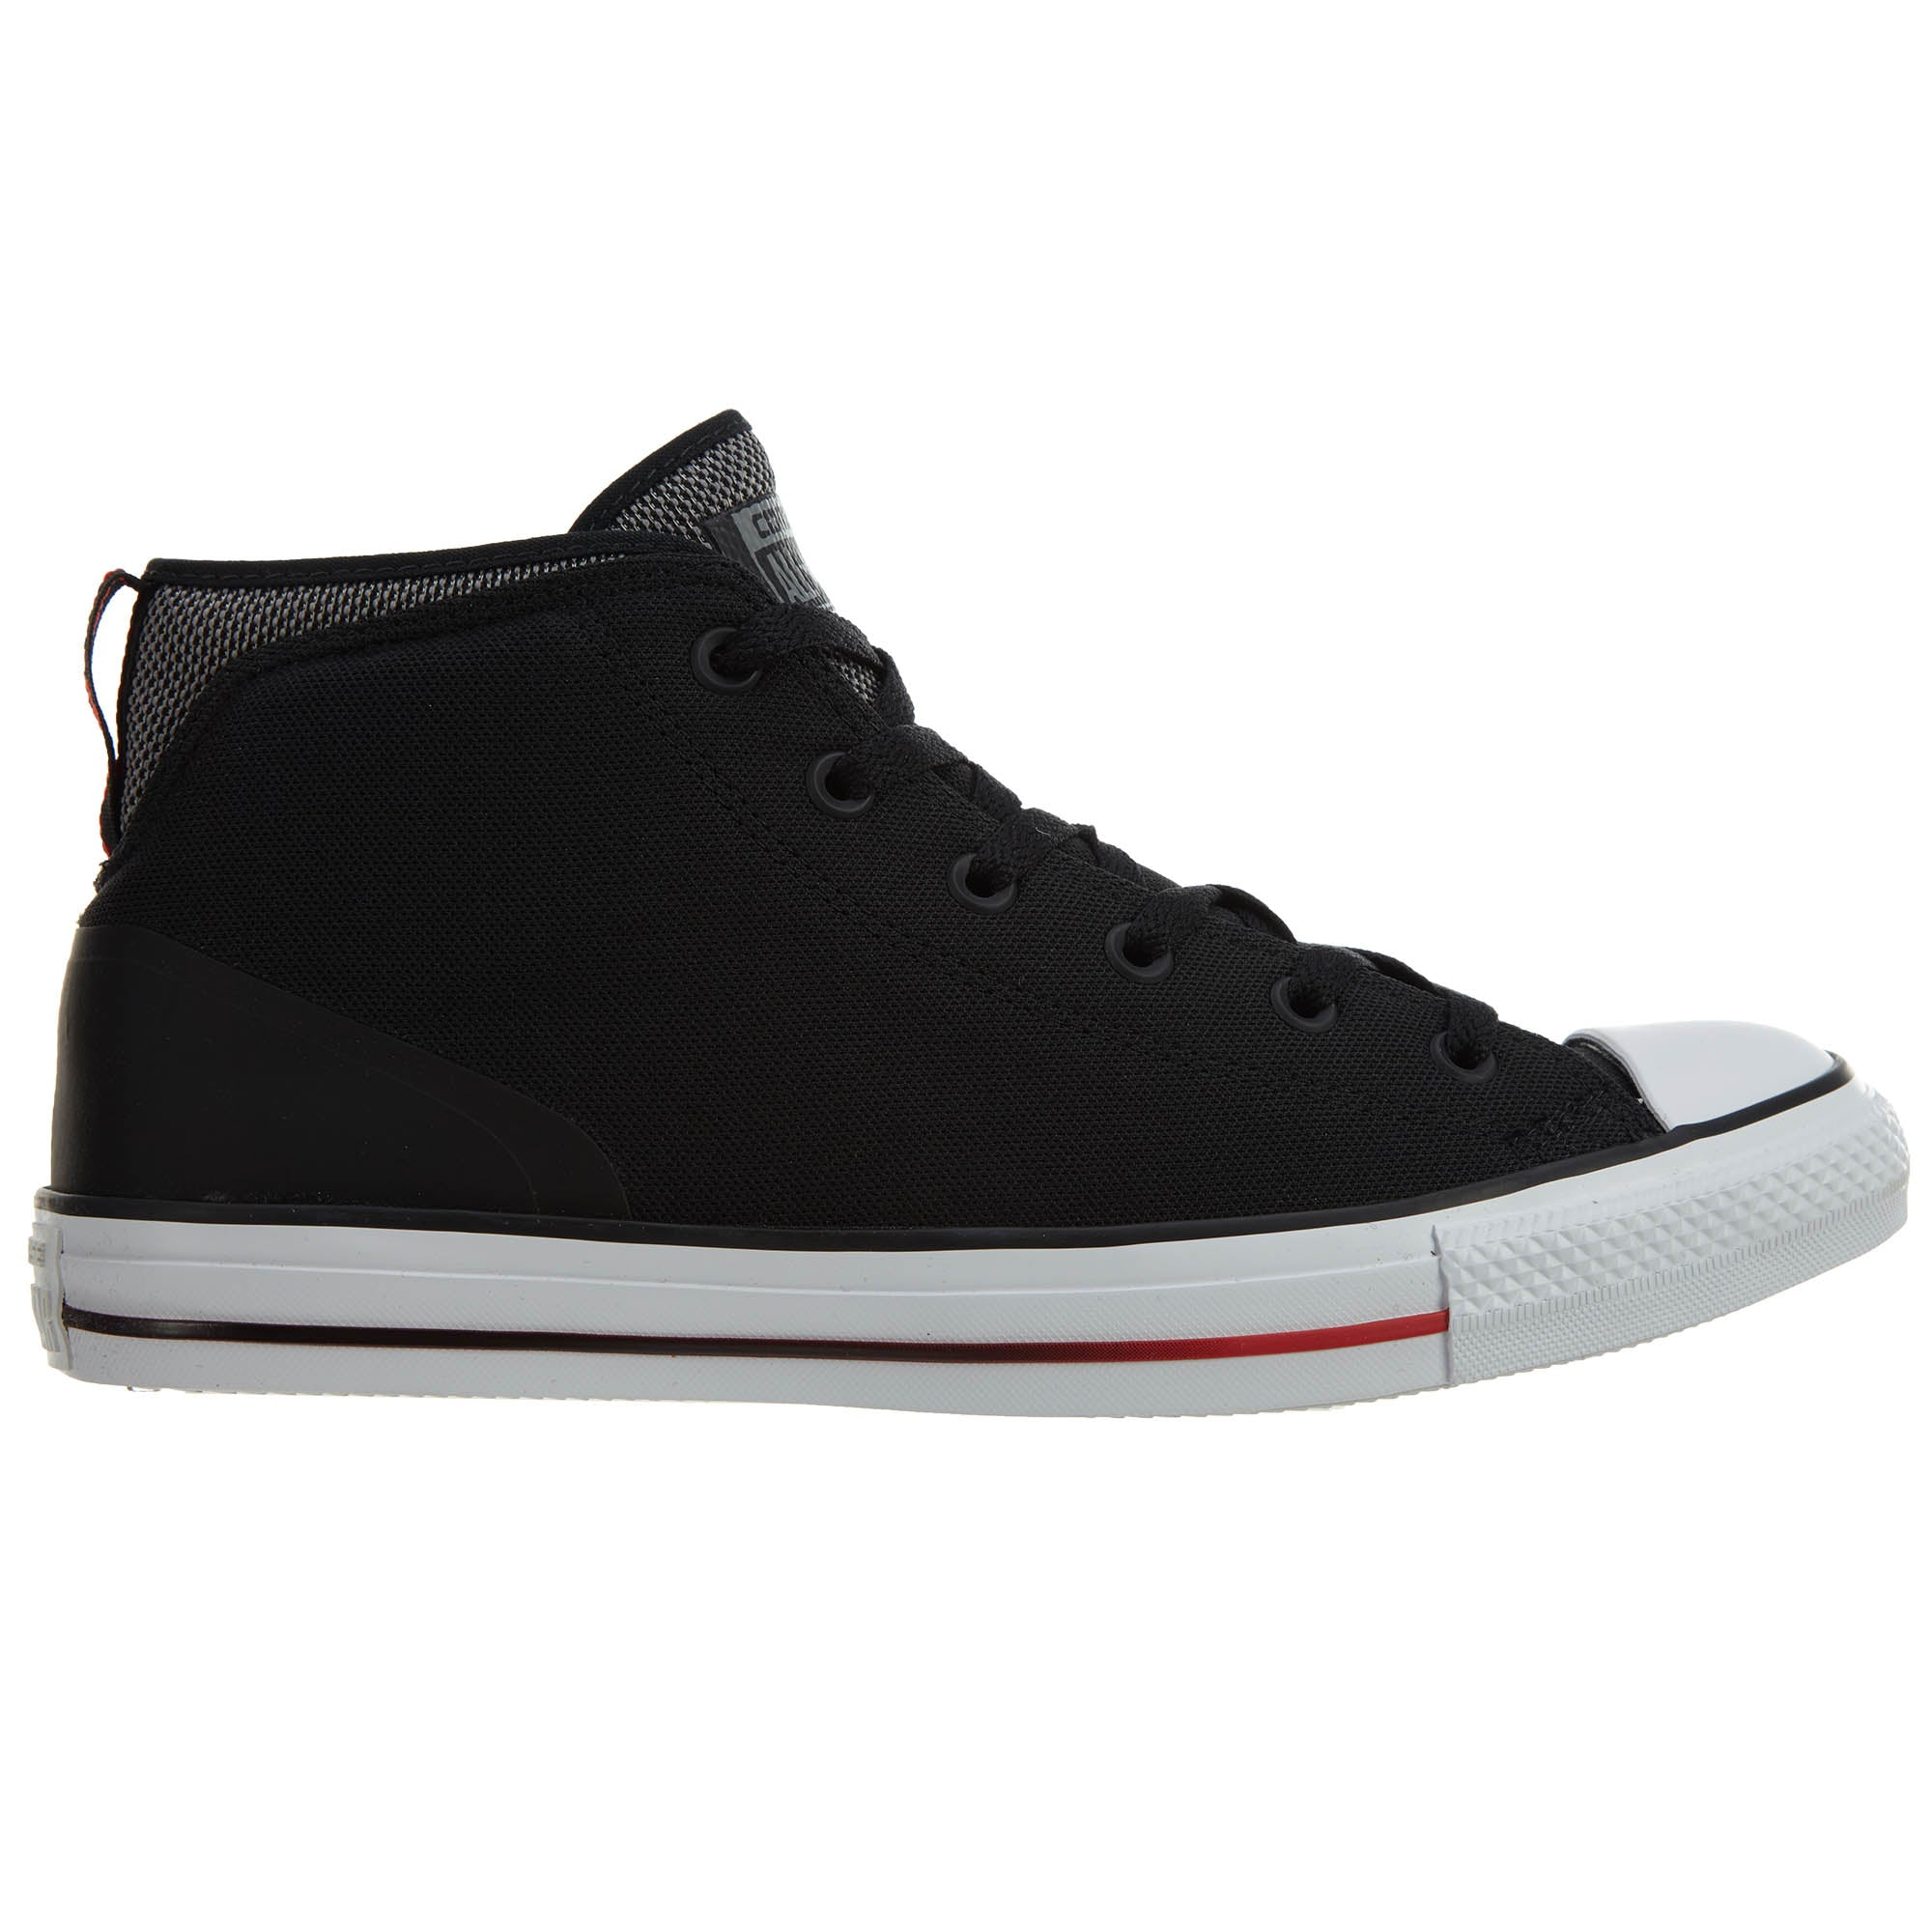 b448a3f512c Converse Chuck Taylor All Star Syde Street Mid Unisex Style   155479c